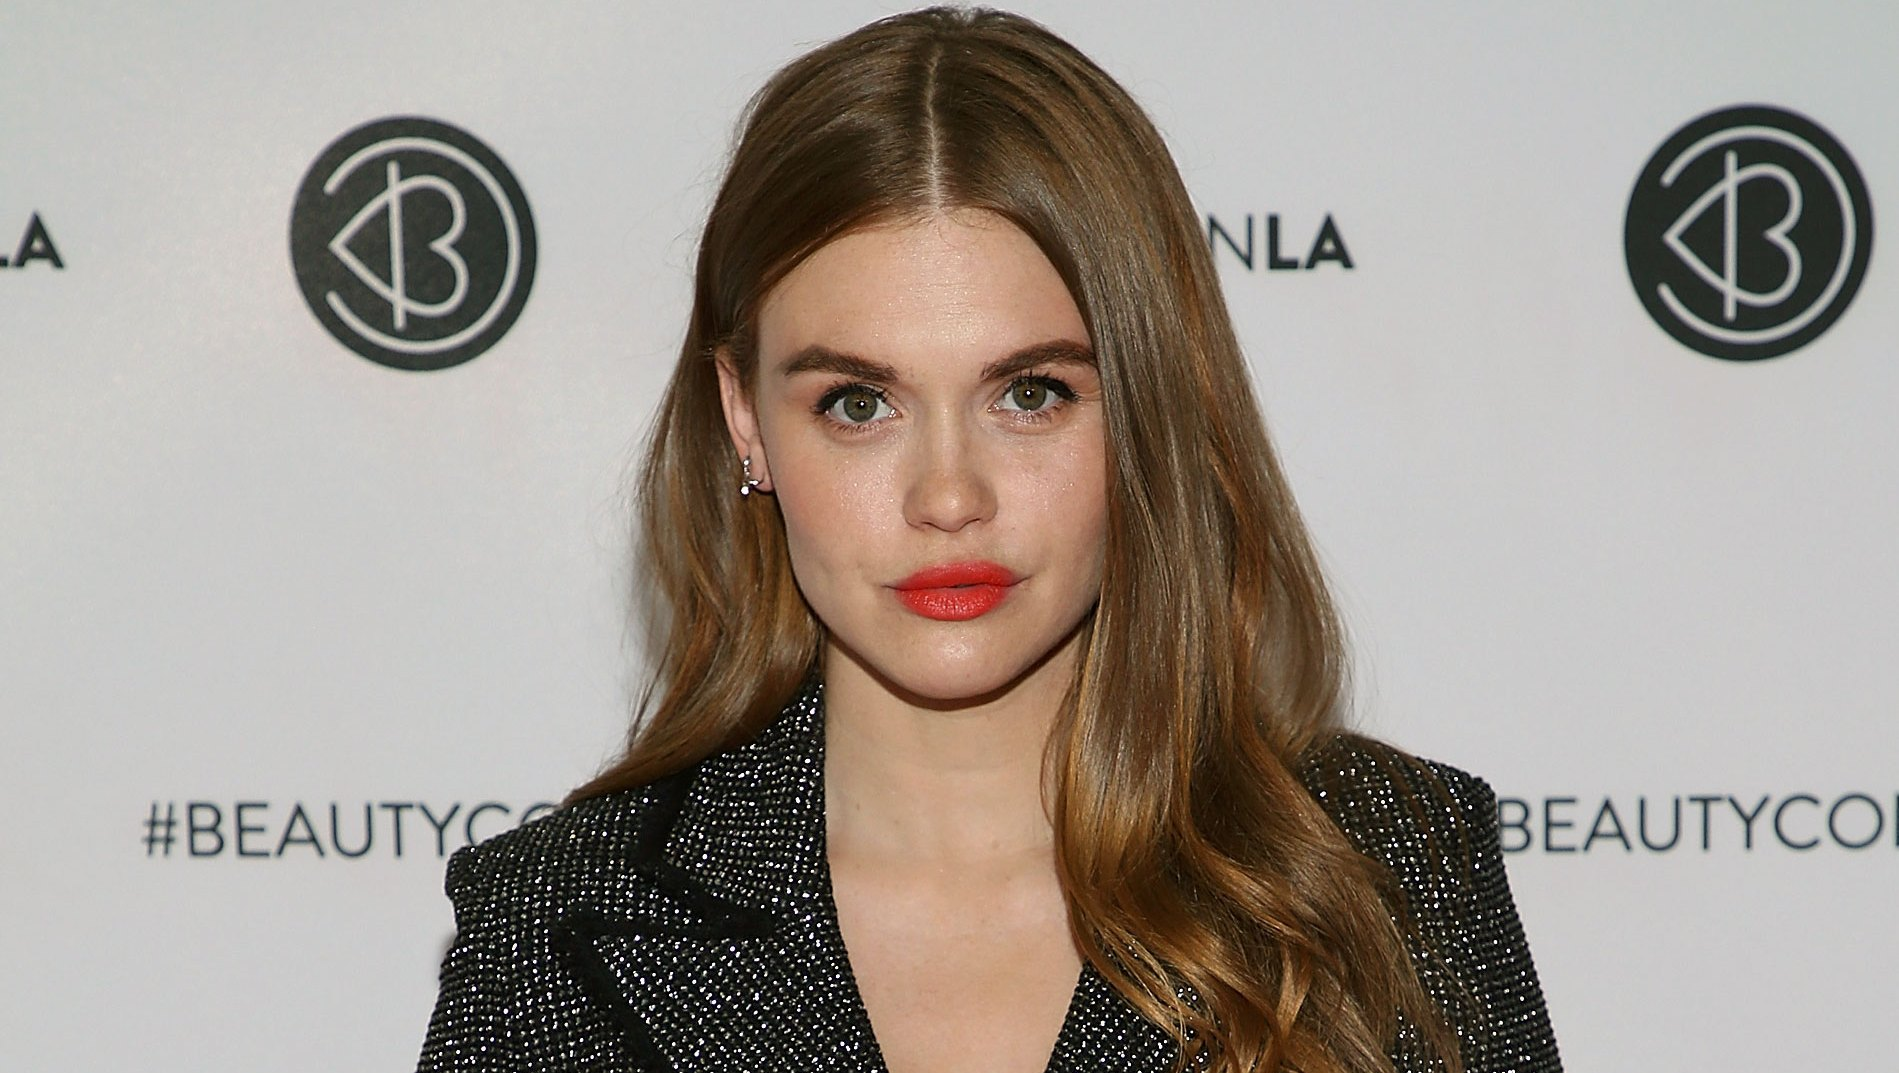 Holland Roden Detained in Brazil for Hours, Allegedly Denied Food and Water